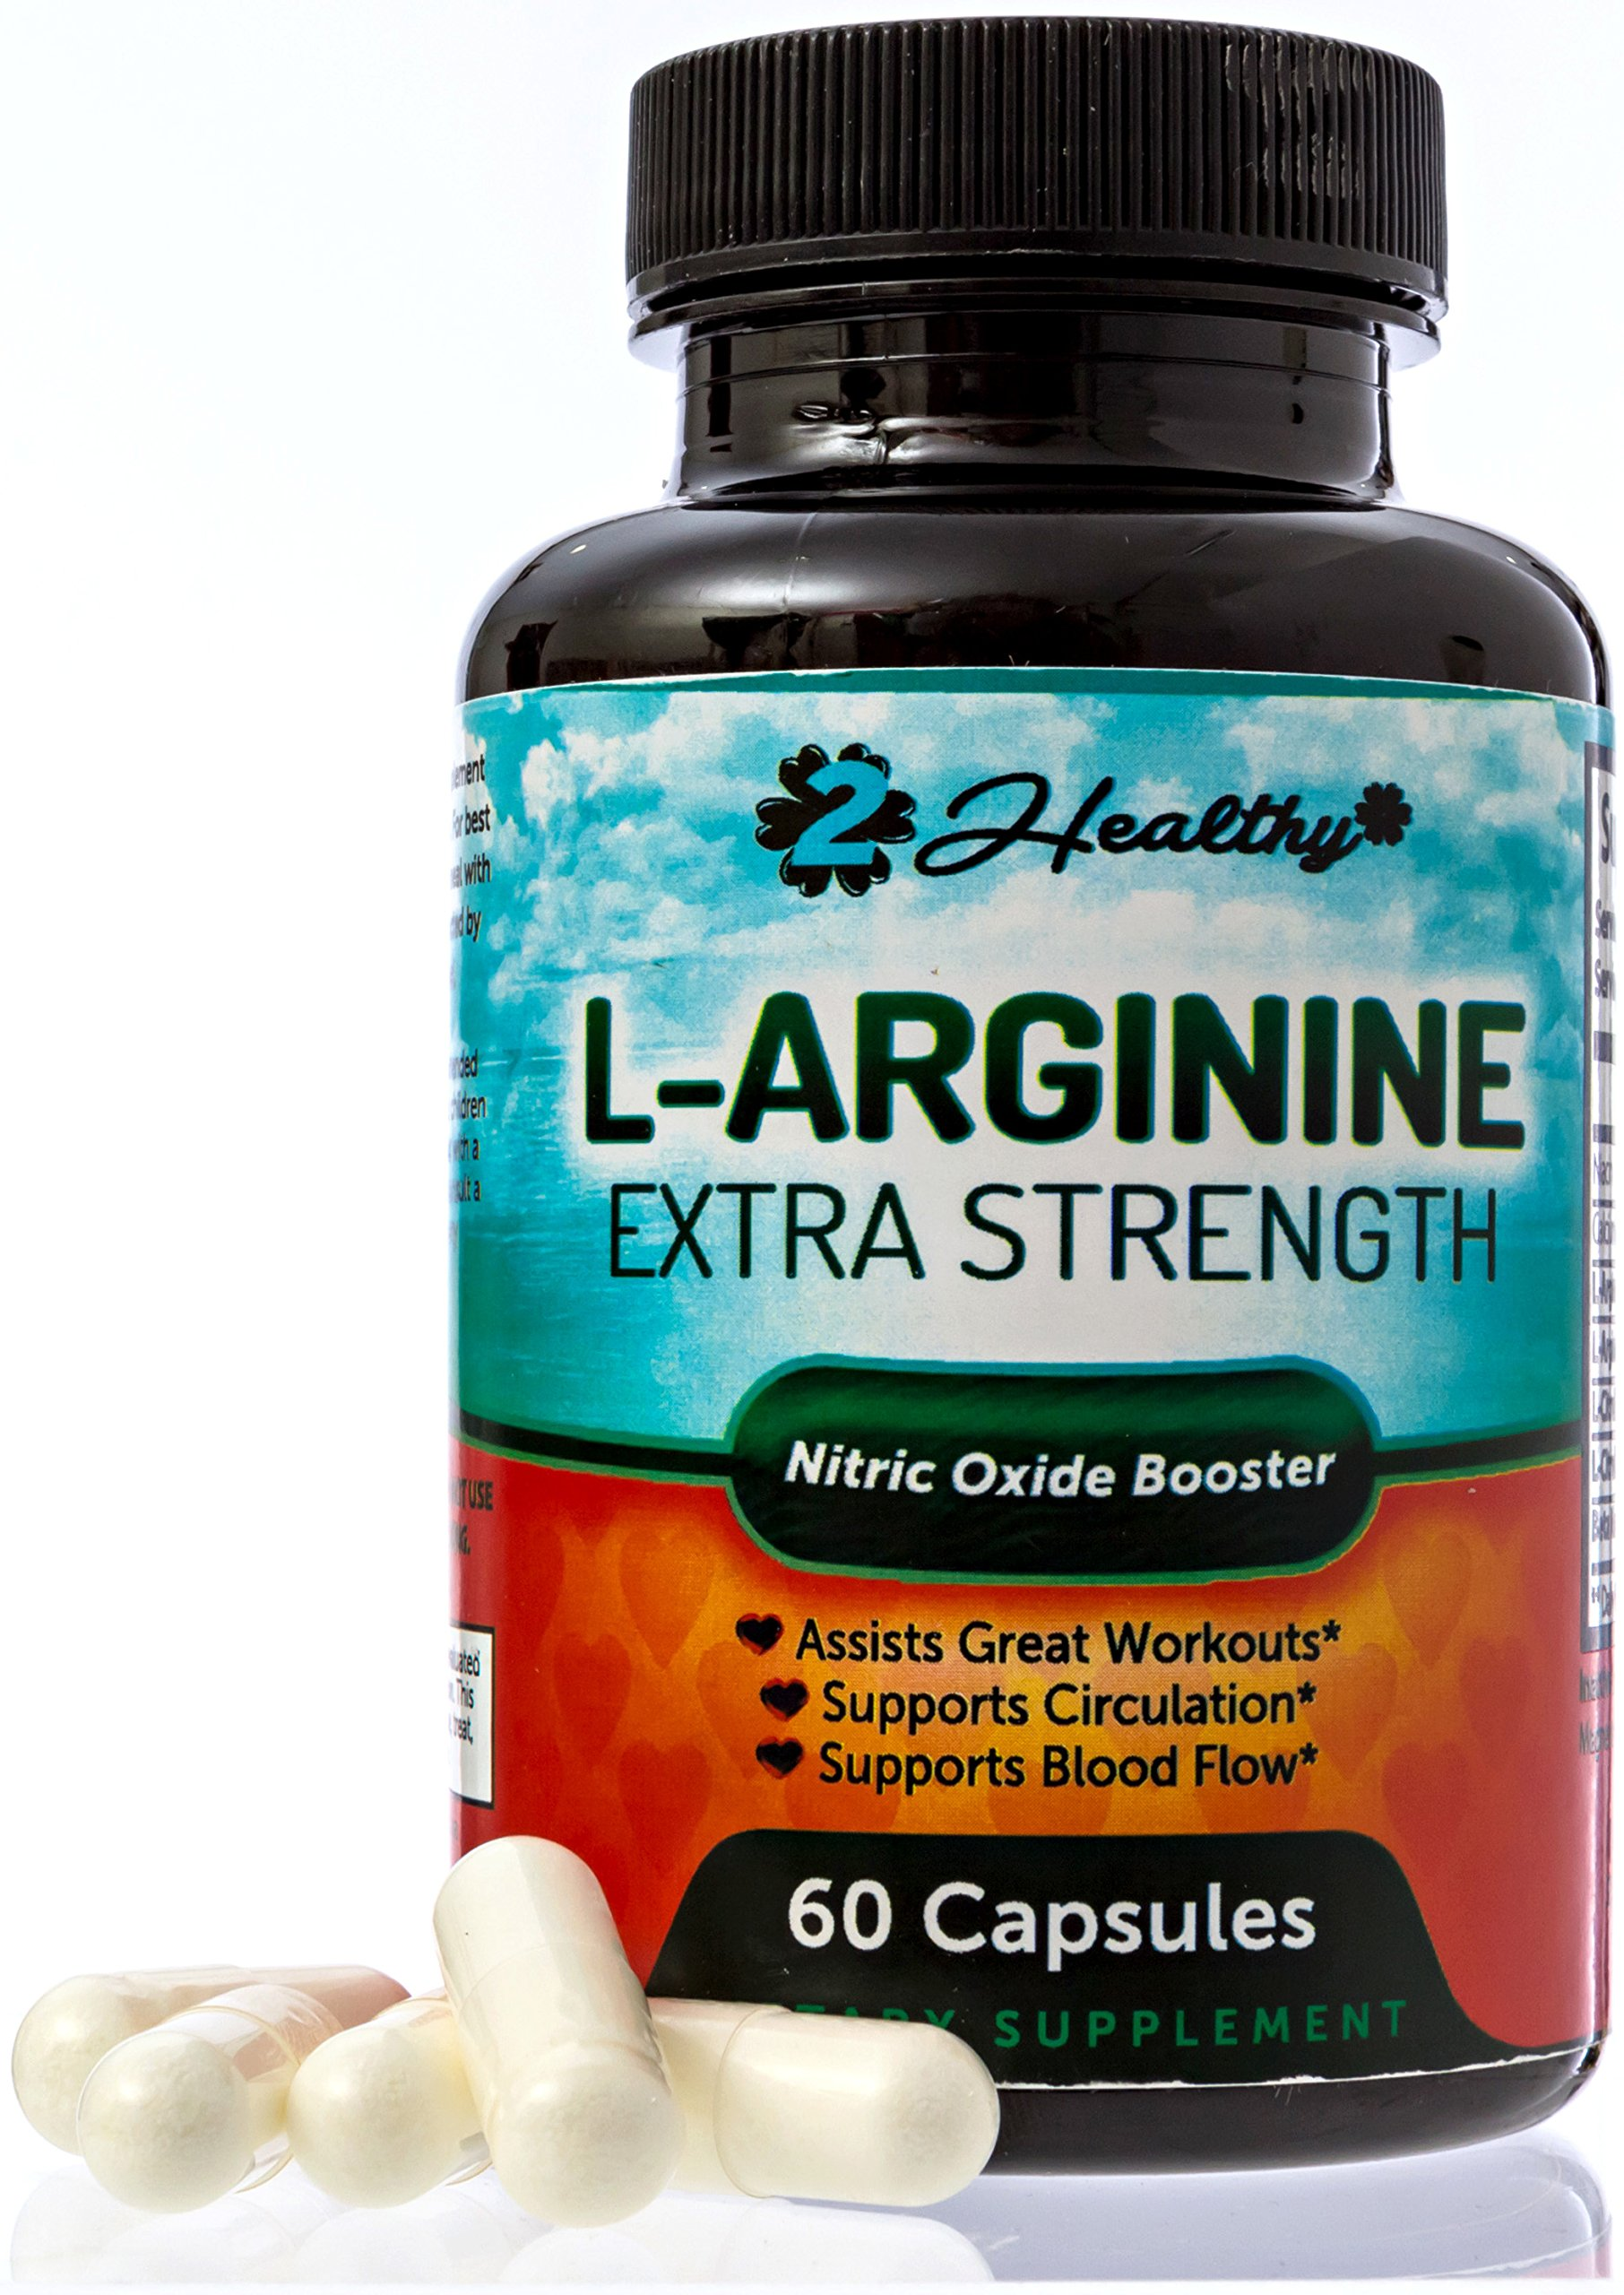 Extra-Strength L-Arginine - 1300mg N.O. Nitric Oxide Booster for Muscle Builder, Vascularity & Energy | Cardio Heart Supplement With L-Citrulline | Essential Amino Acids To Workout Stronger